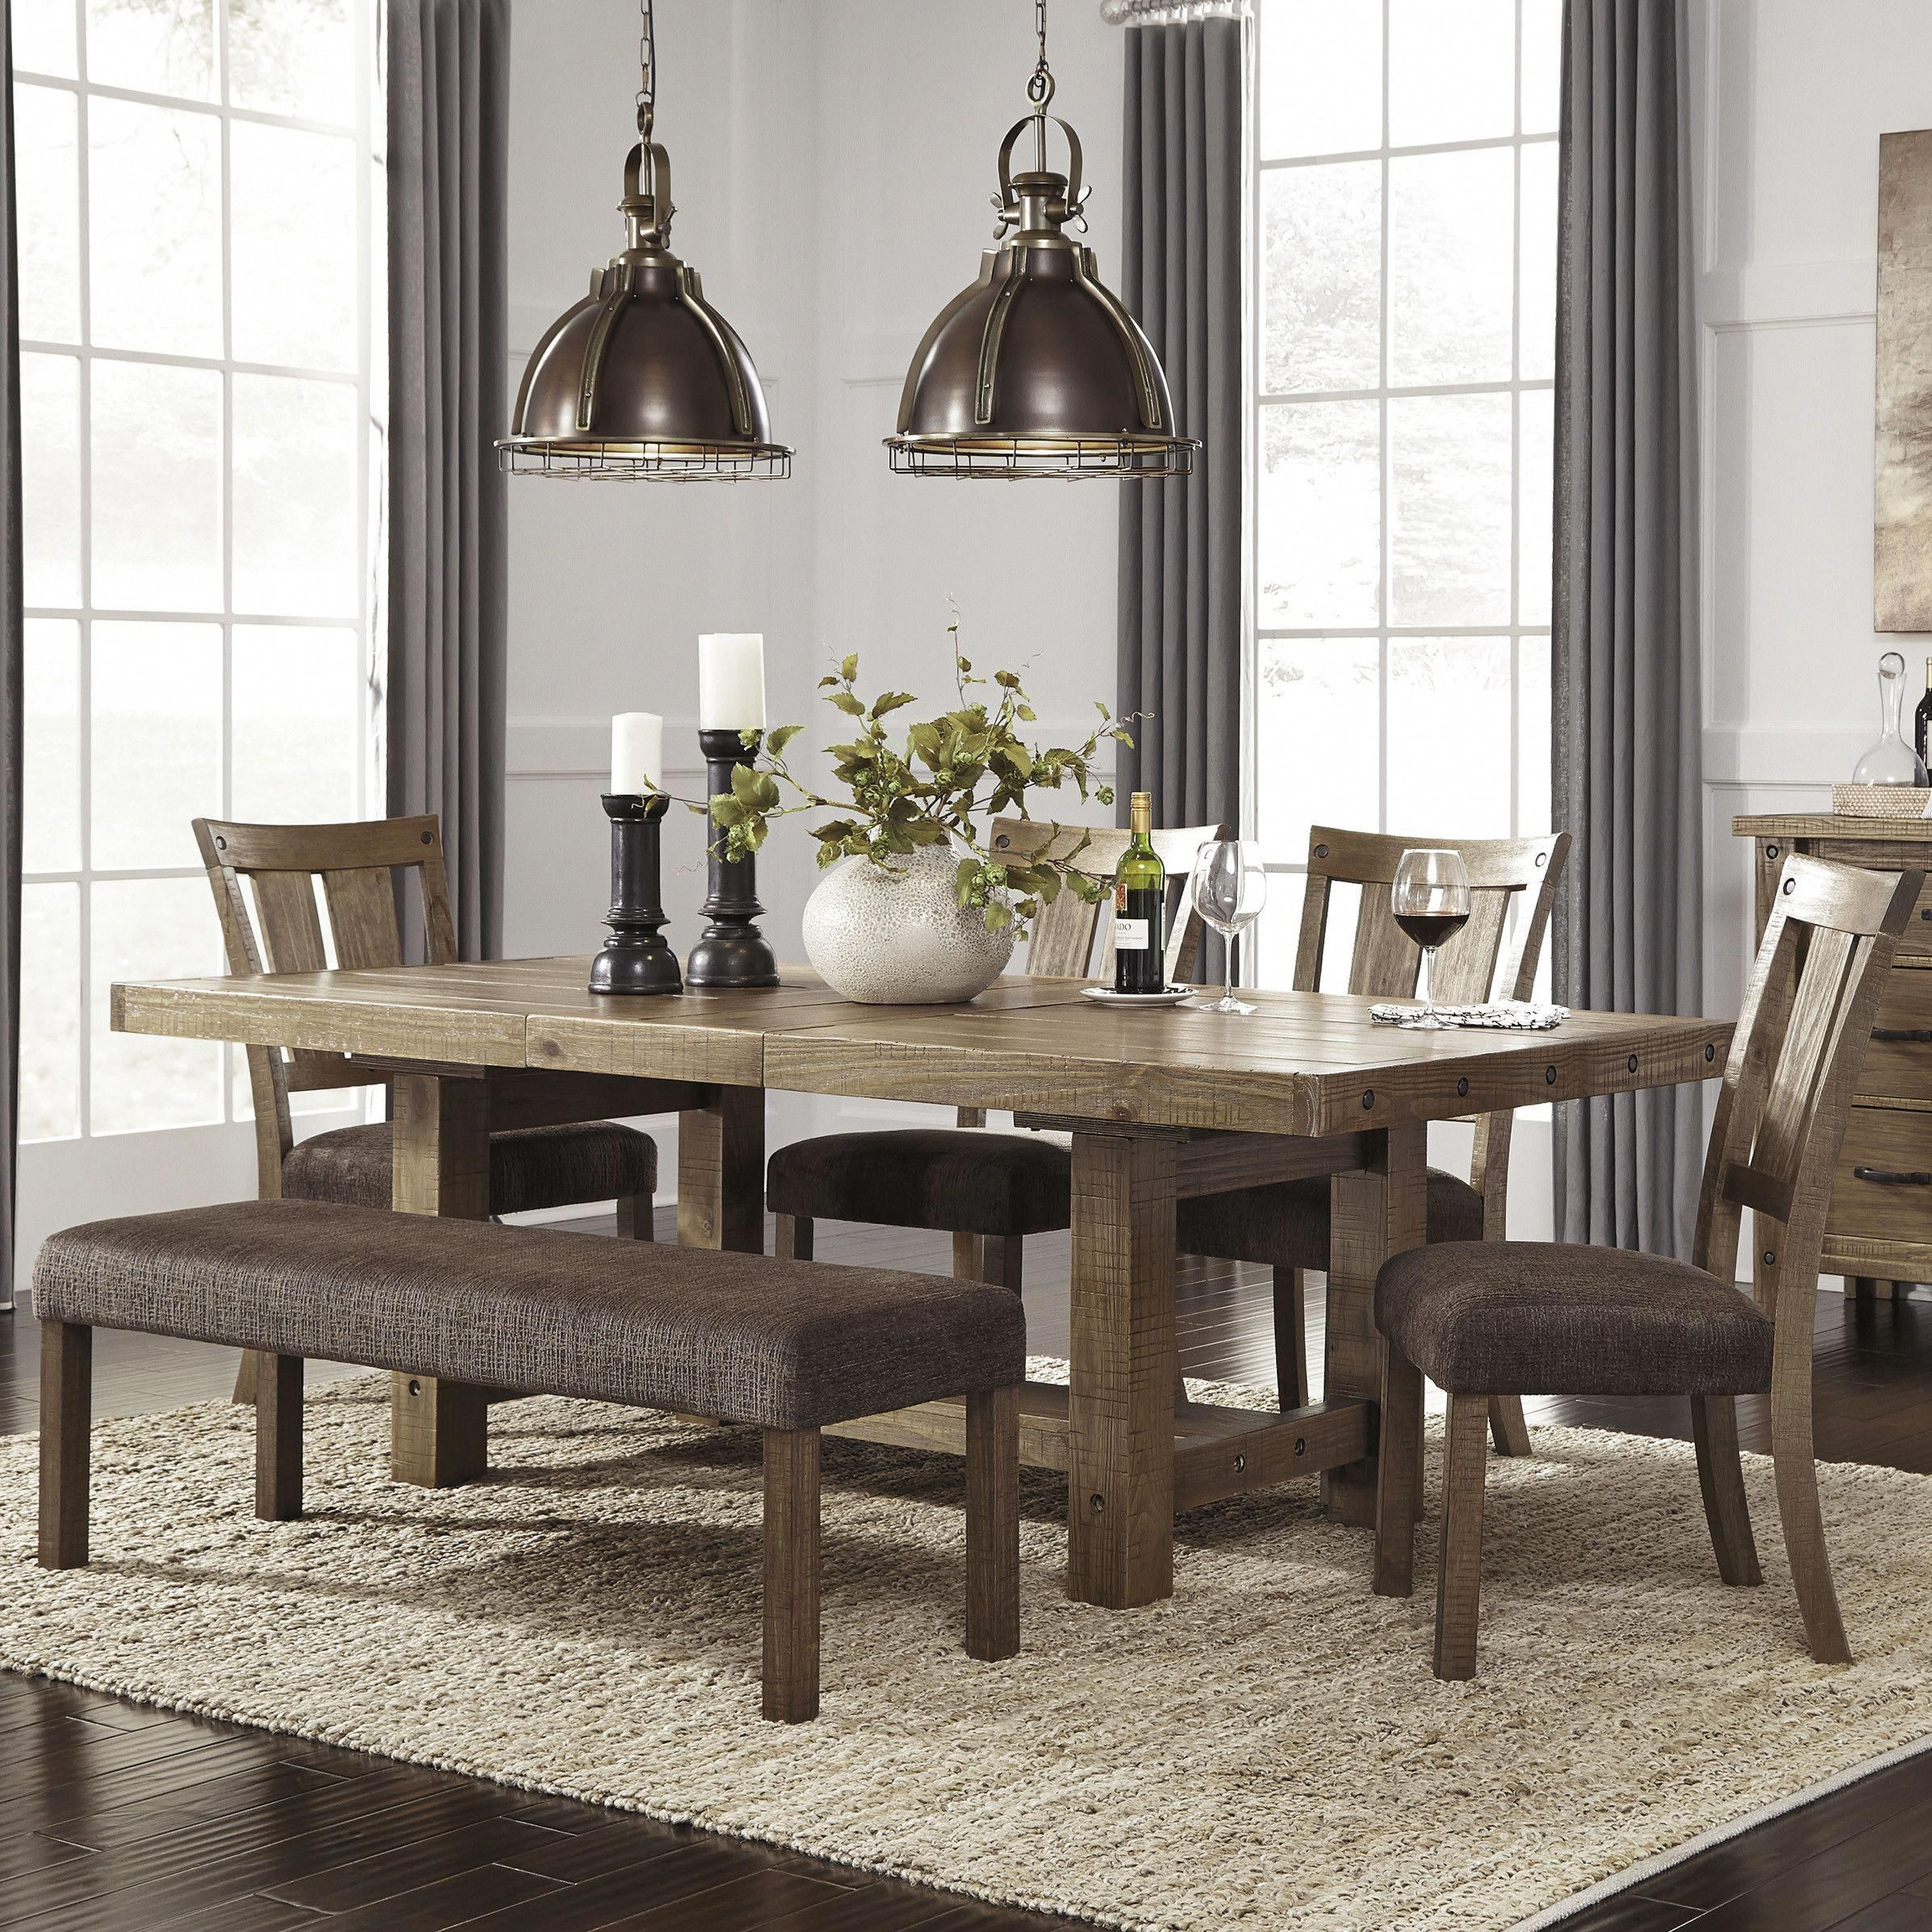 Delicieux Signature Design By Ashley 6 Piece Dining Set #cheapdiningroomchairs